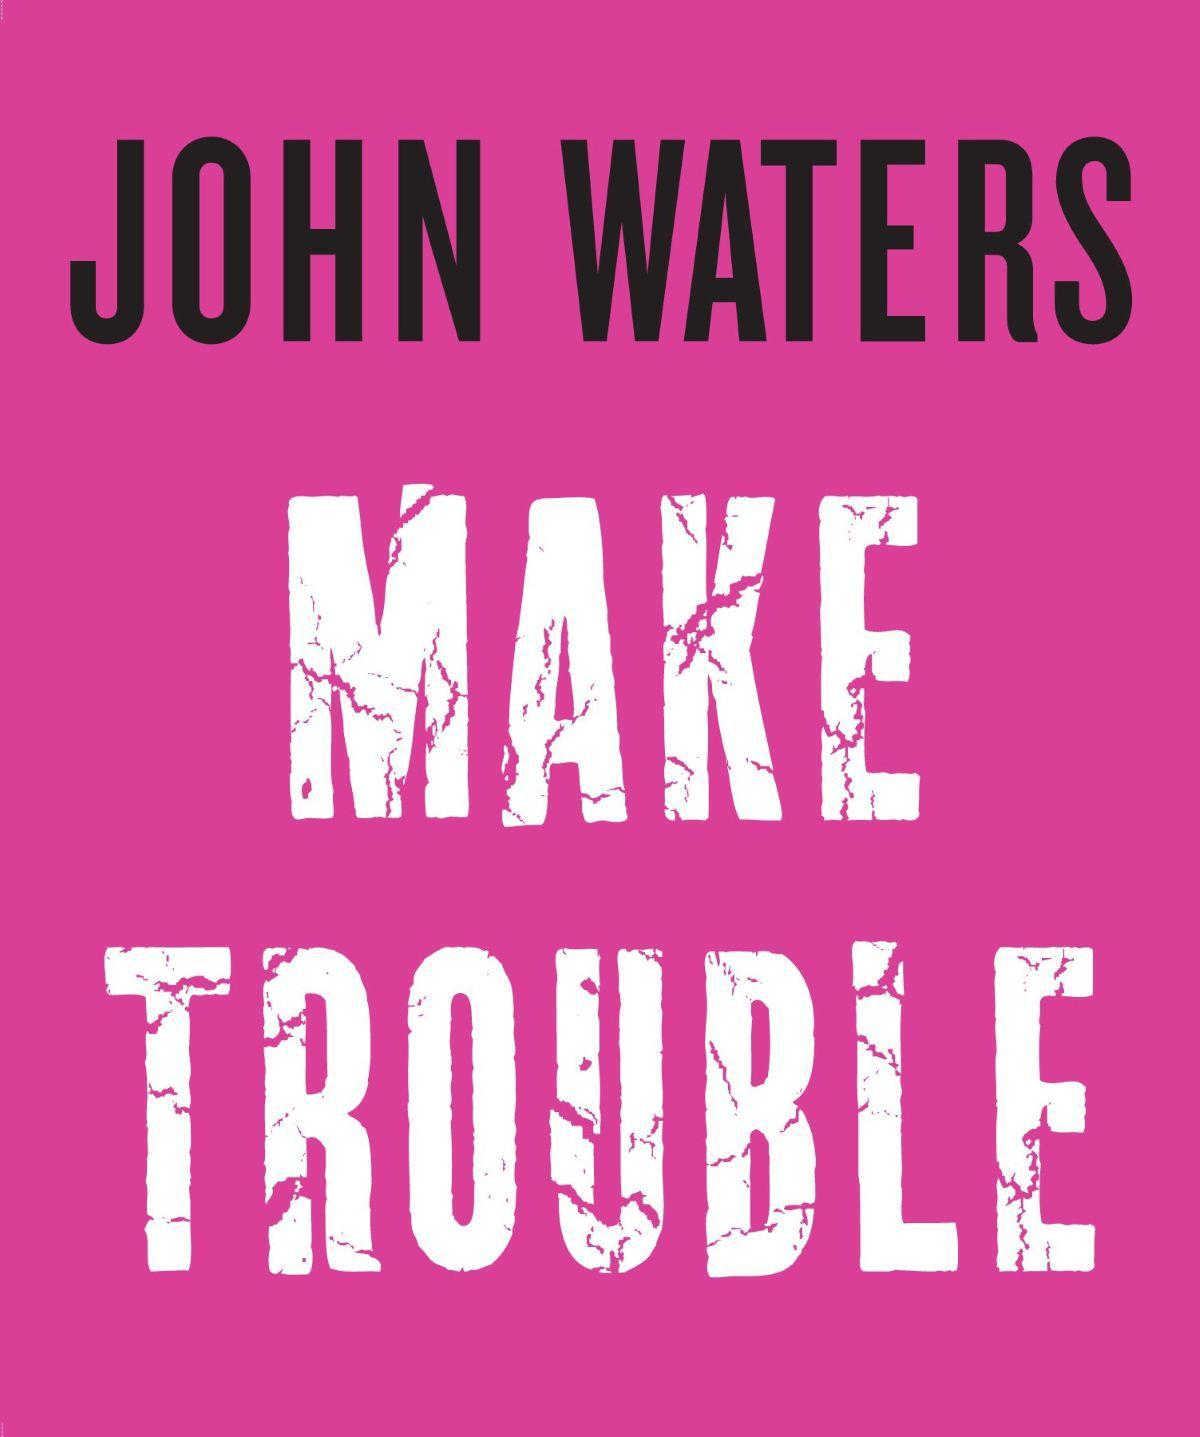 Director, author John Waters will sign books at the Clinton Holiday Inn